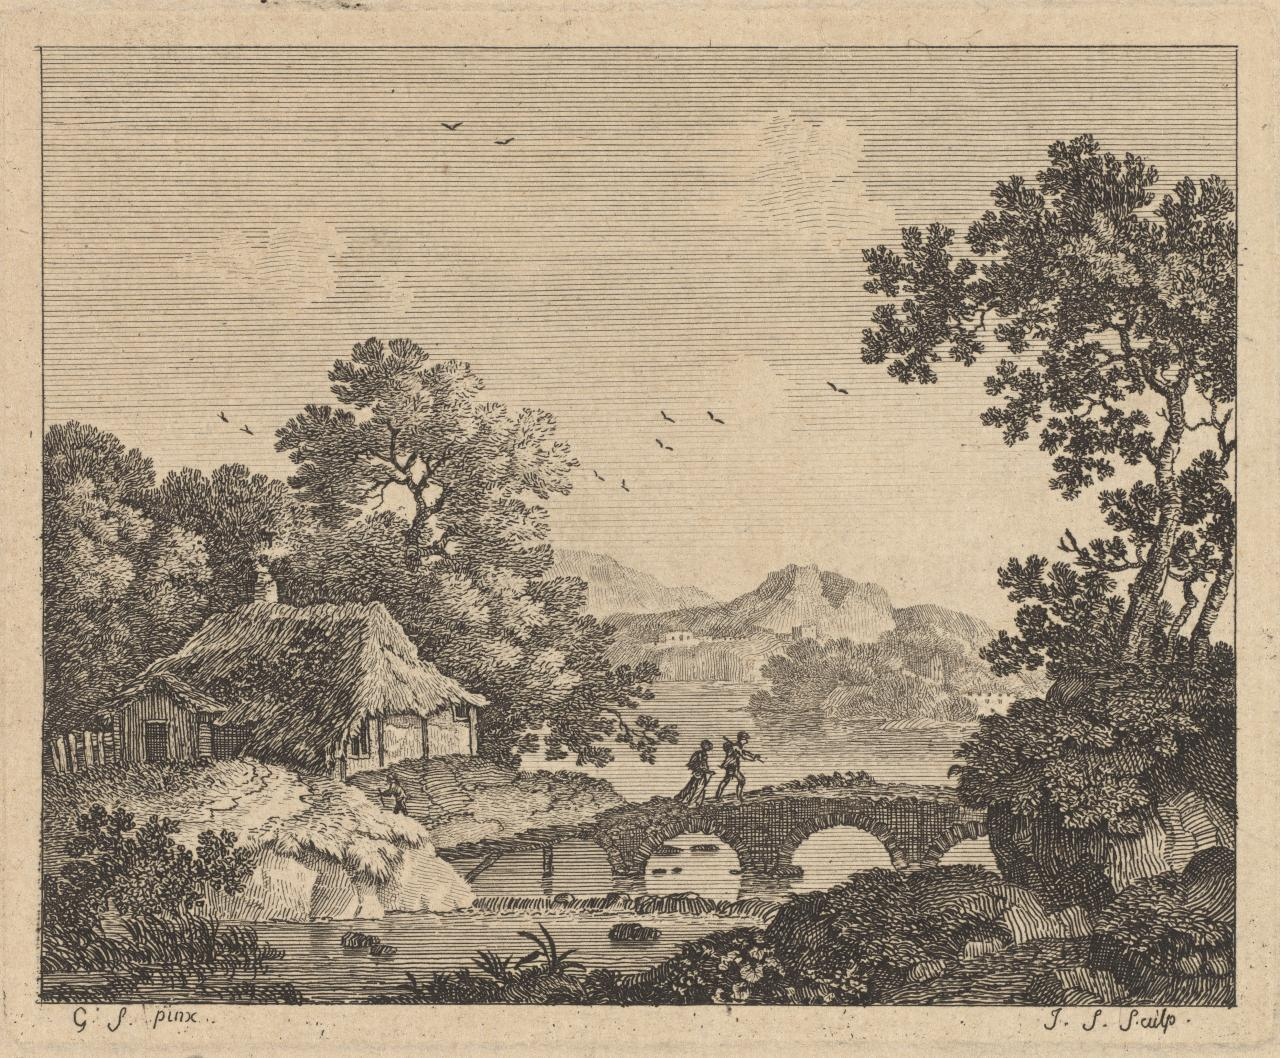 Untitled (Two figures on arched stone bridge, cottage and lake)